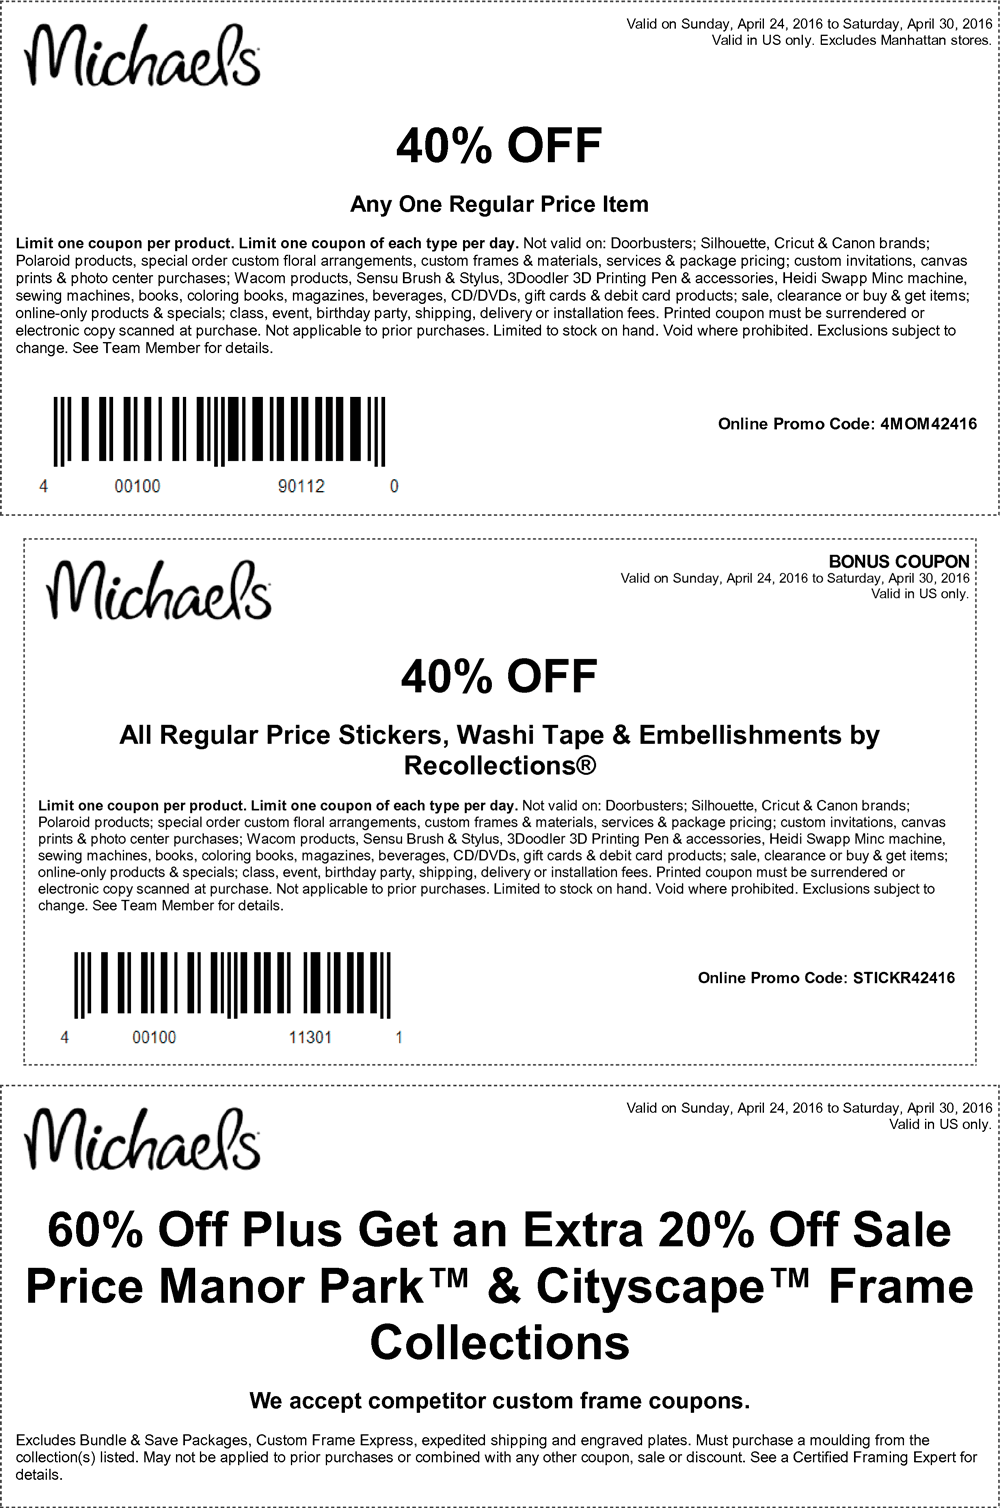 Michaels Coupon December 2016 40% off a single item at Michaels, or online via promo code 4MOM42416